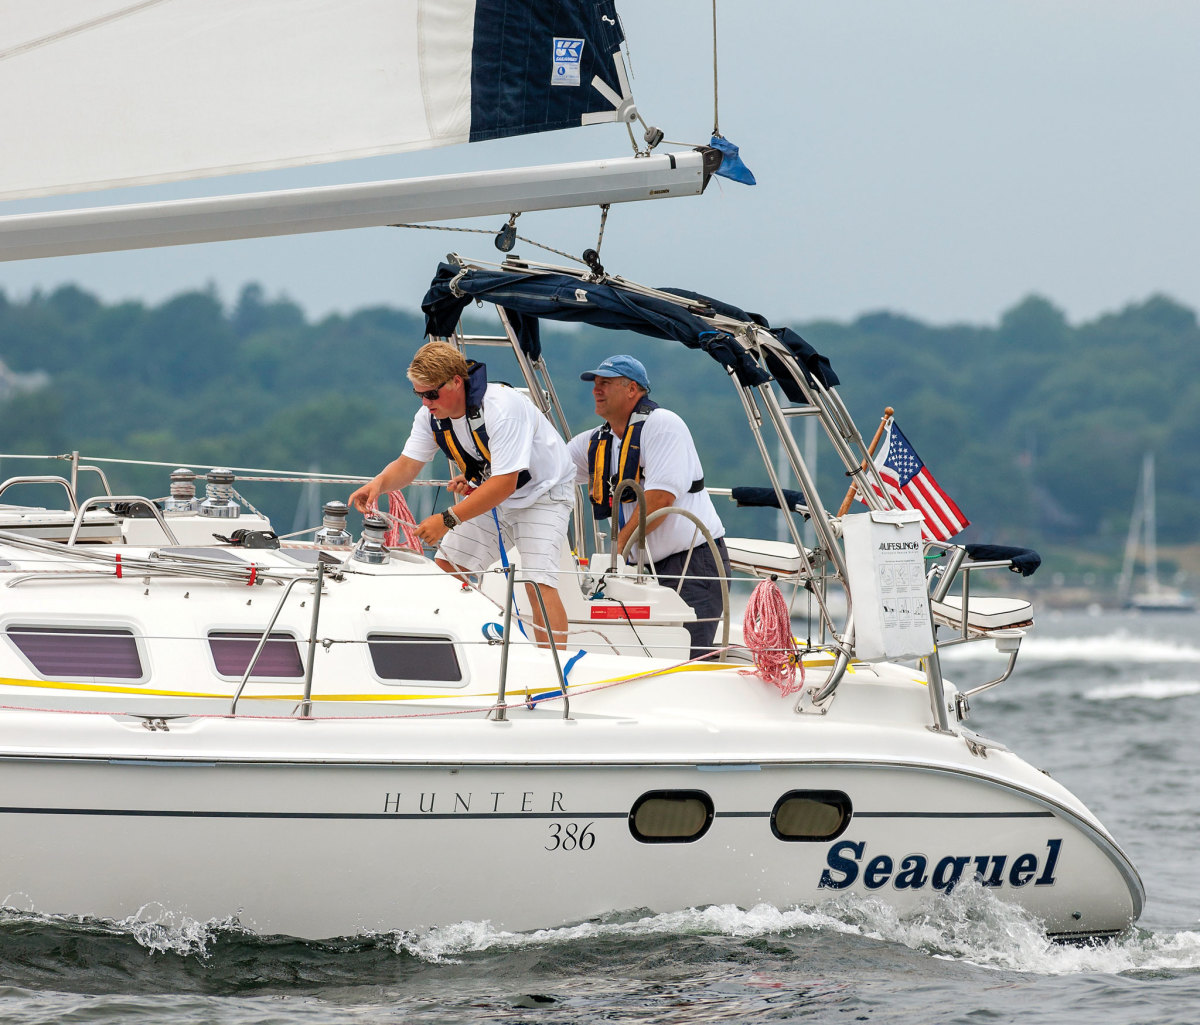 Picking the right shipmate for doublehanded racing is crucial